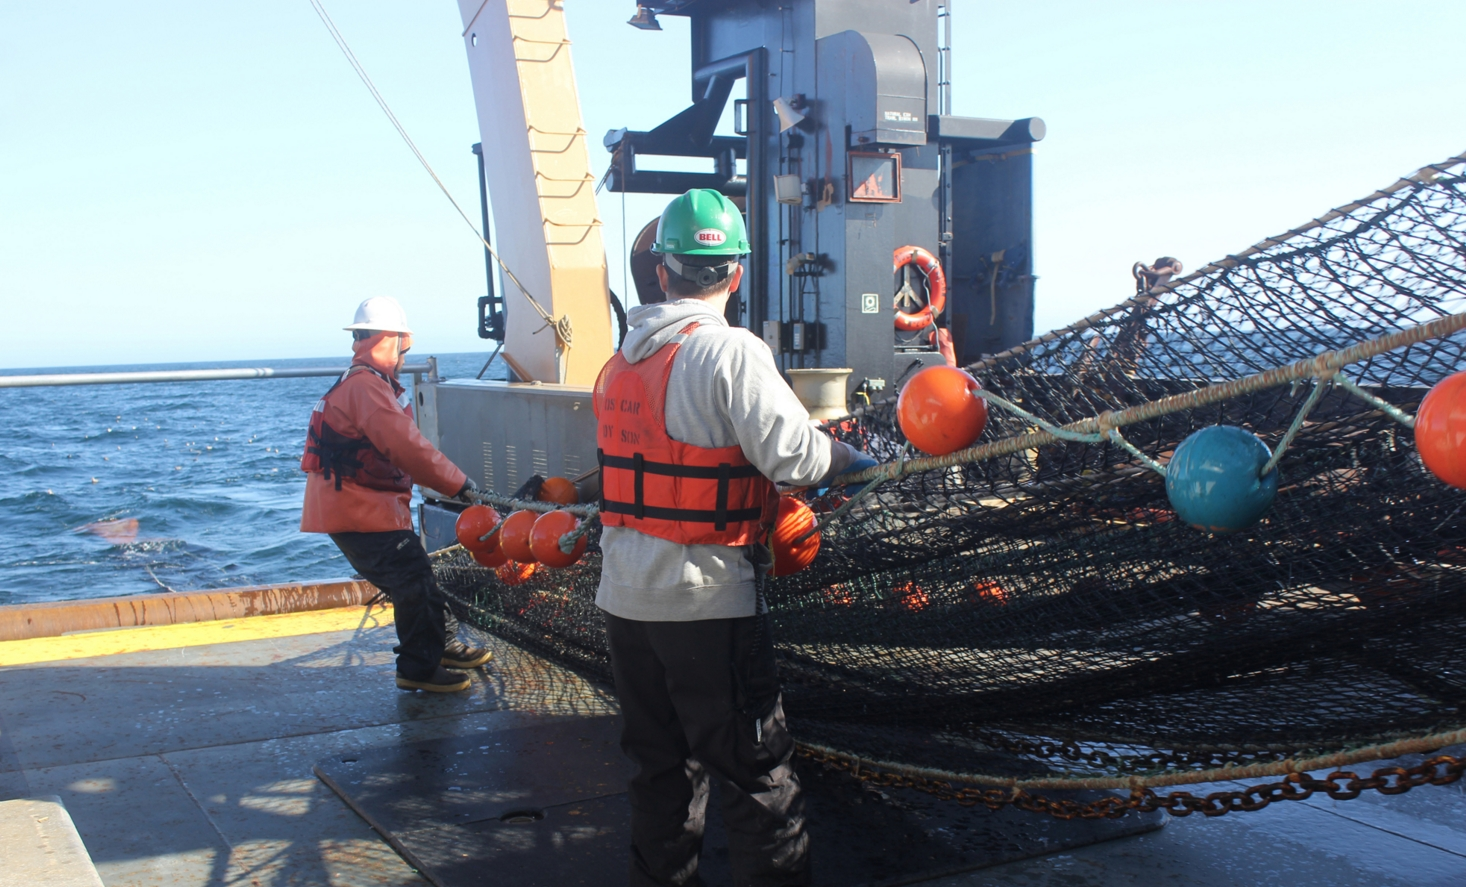 Crew members align the net as it winches in with the fish in the orange bag that still trails in the water. (Credit: NOAA)